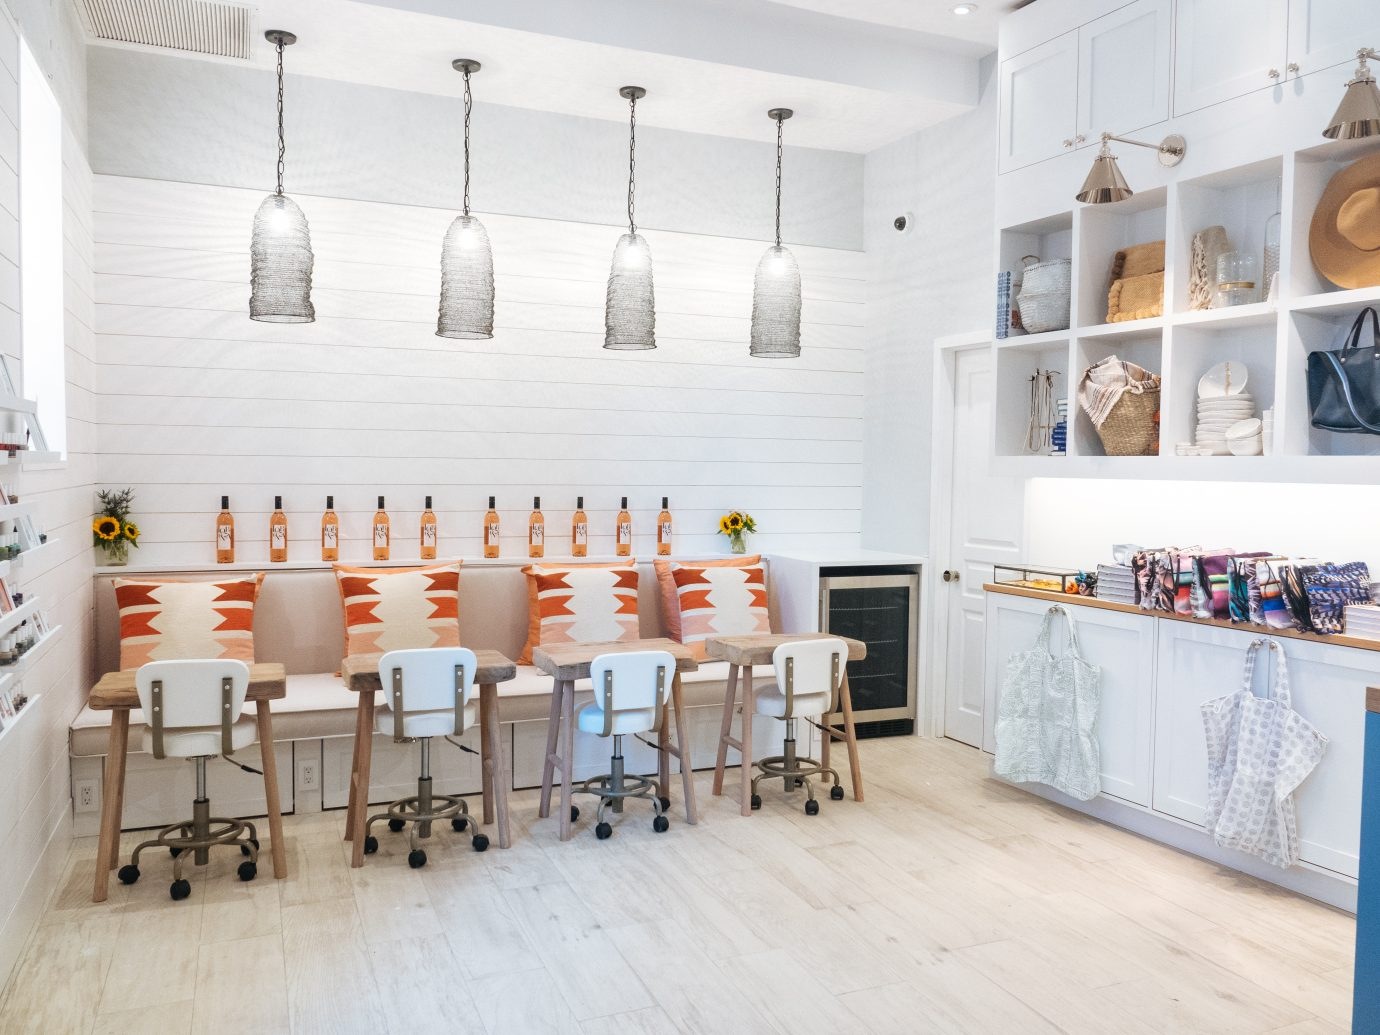 The 10 Coolest Nail Salons In Nyc Nontoxic Nail Art And More Jetsetter,Low Maintenance Front Yard Landscape Design Ideas